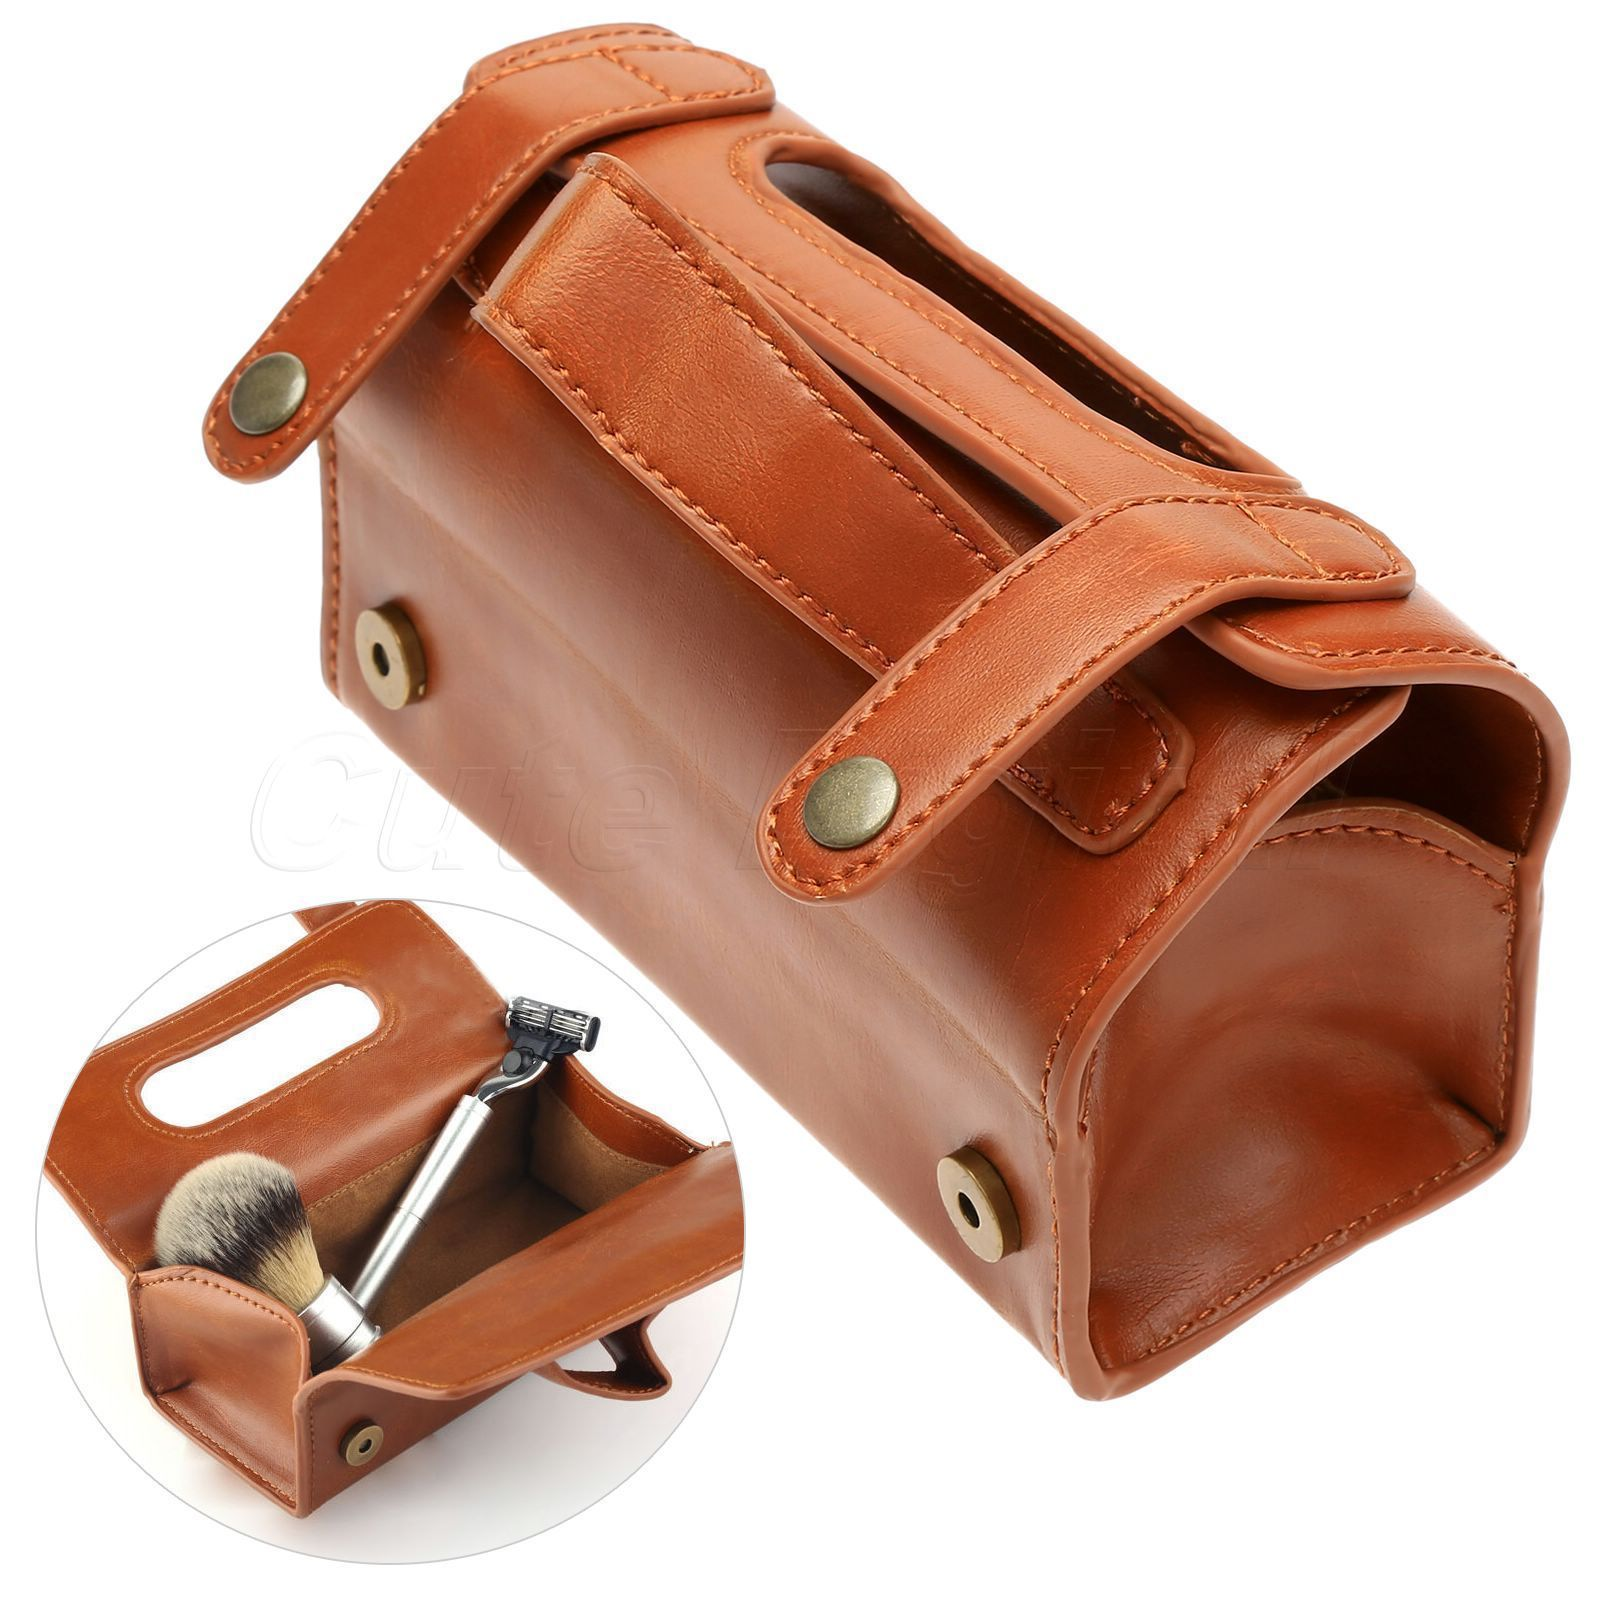 Simple Men/'s Travel Brown Leather Pouch Case Bag for Shaving Brush /& Razor Use